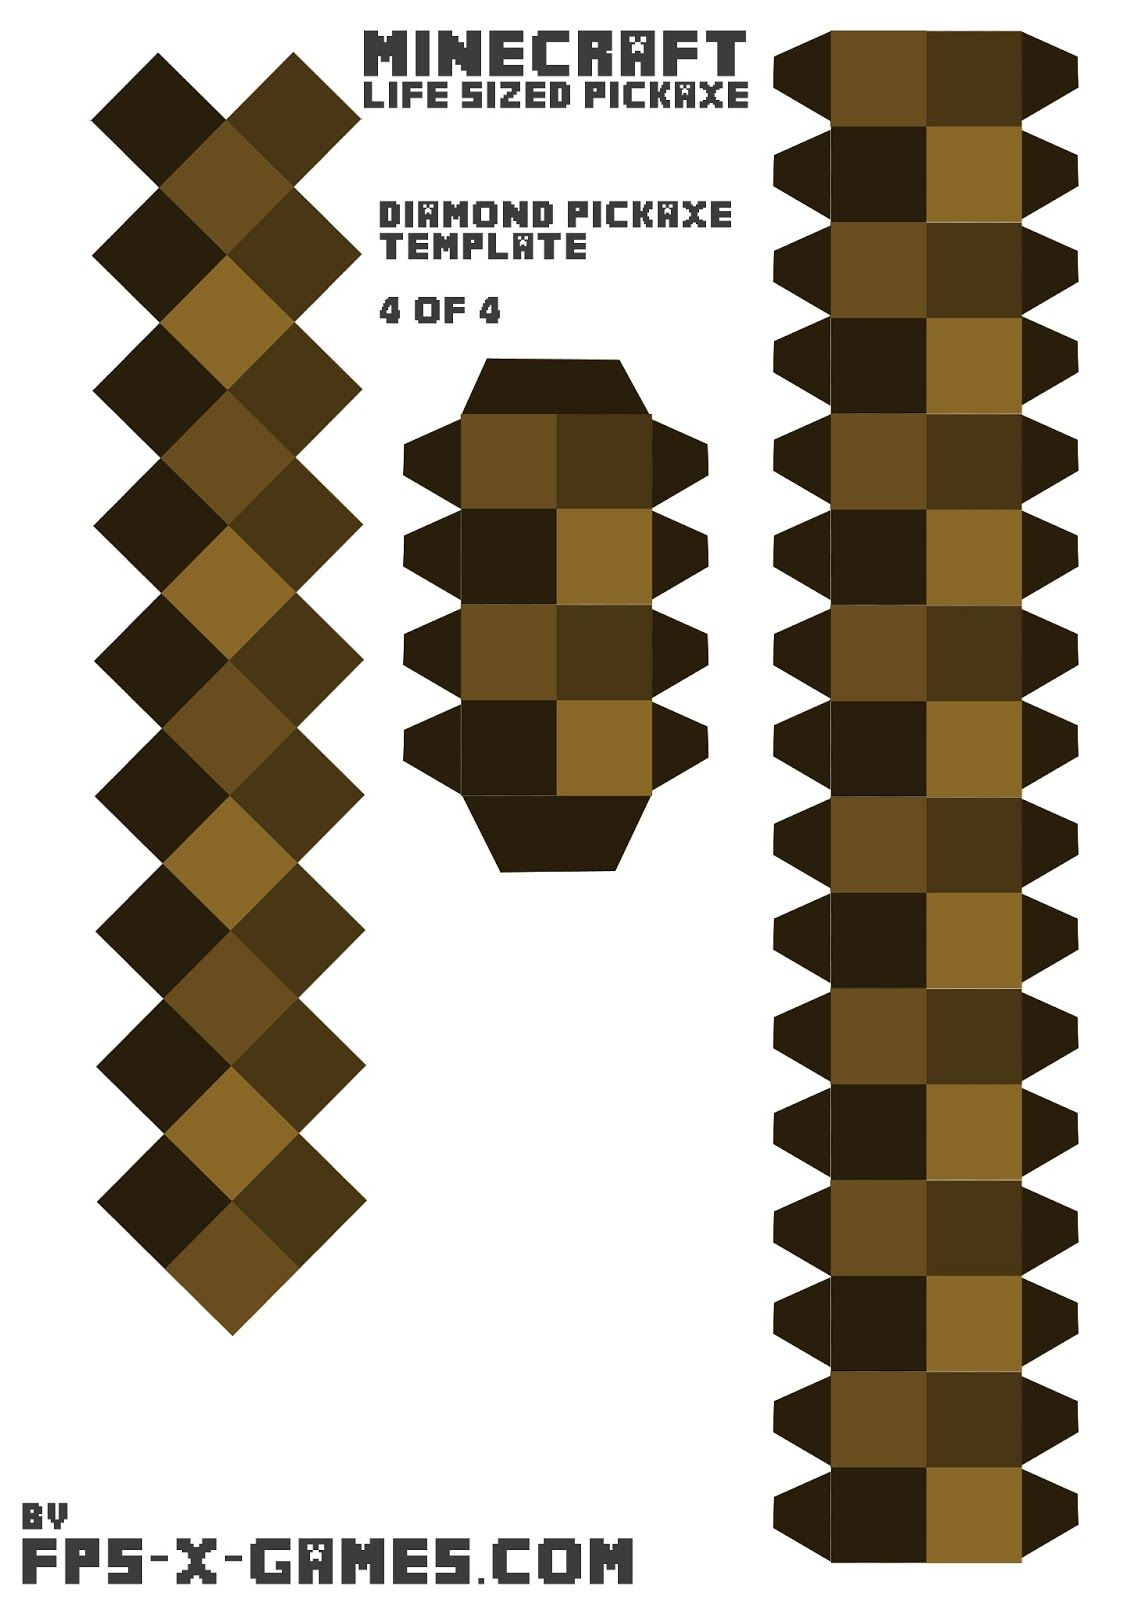 Minecraft life sized diamond pickaxe printable papercraft for Minecraft cut out templates